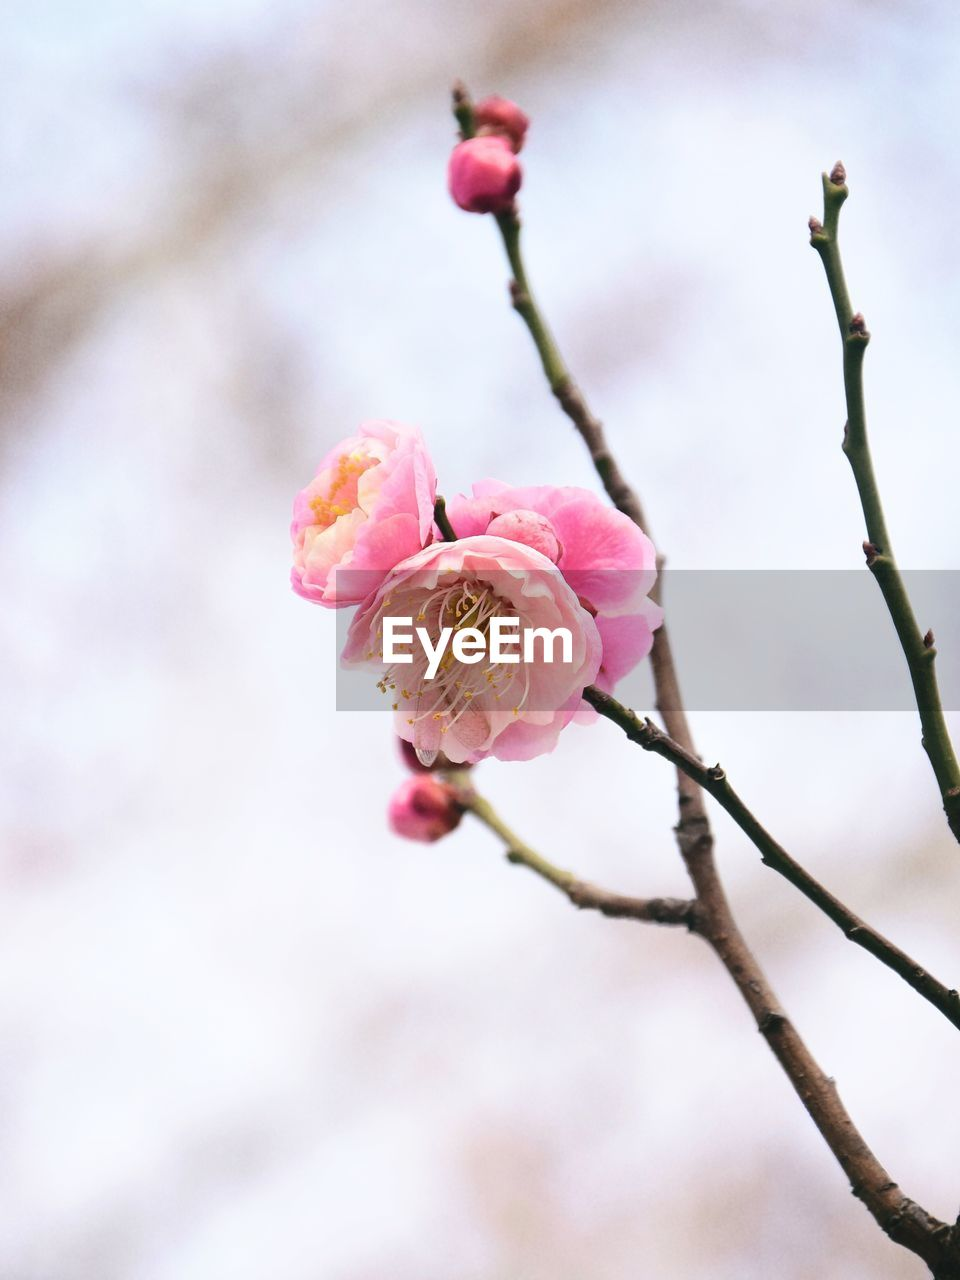 flower, flowering plant, plant, pink color, beauty in nature, fragility, freshness, vulnerability, close-up, petal, growth, blossom, inflorescence, flower head, focus on foreground, twig, no people, branch, nature, springtime, outdoors, cherry tree, cherry blossom, plum blossom, spring